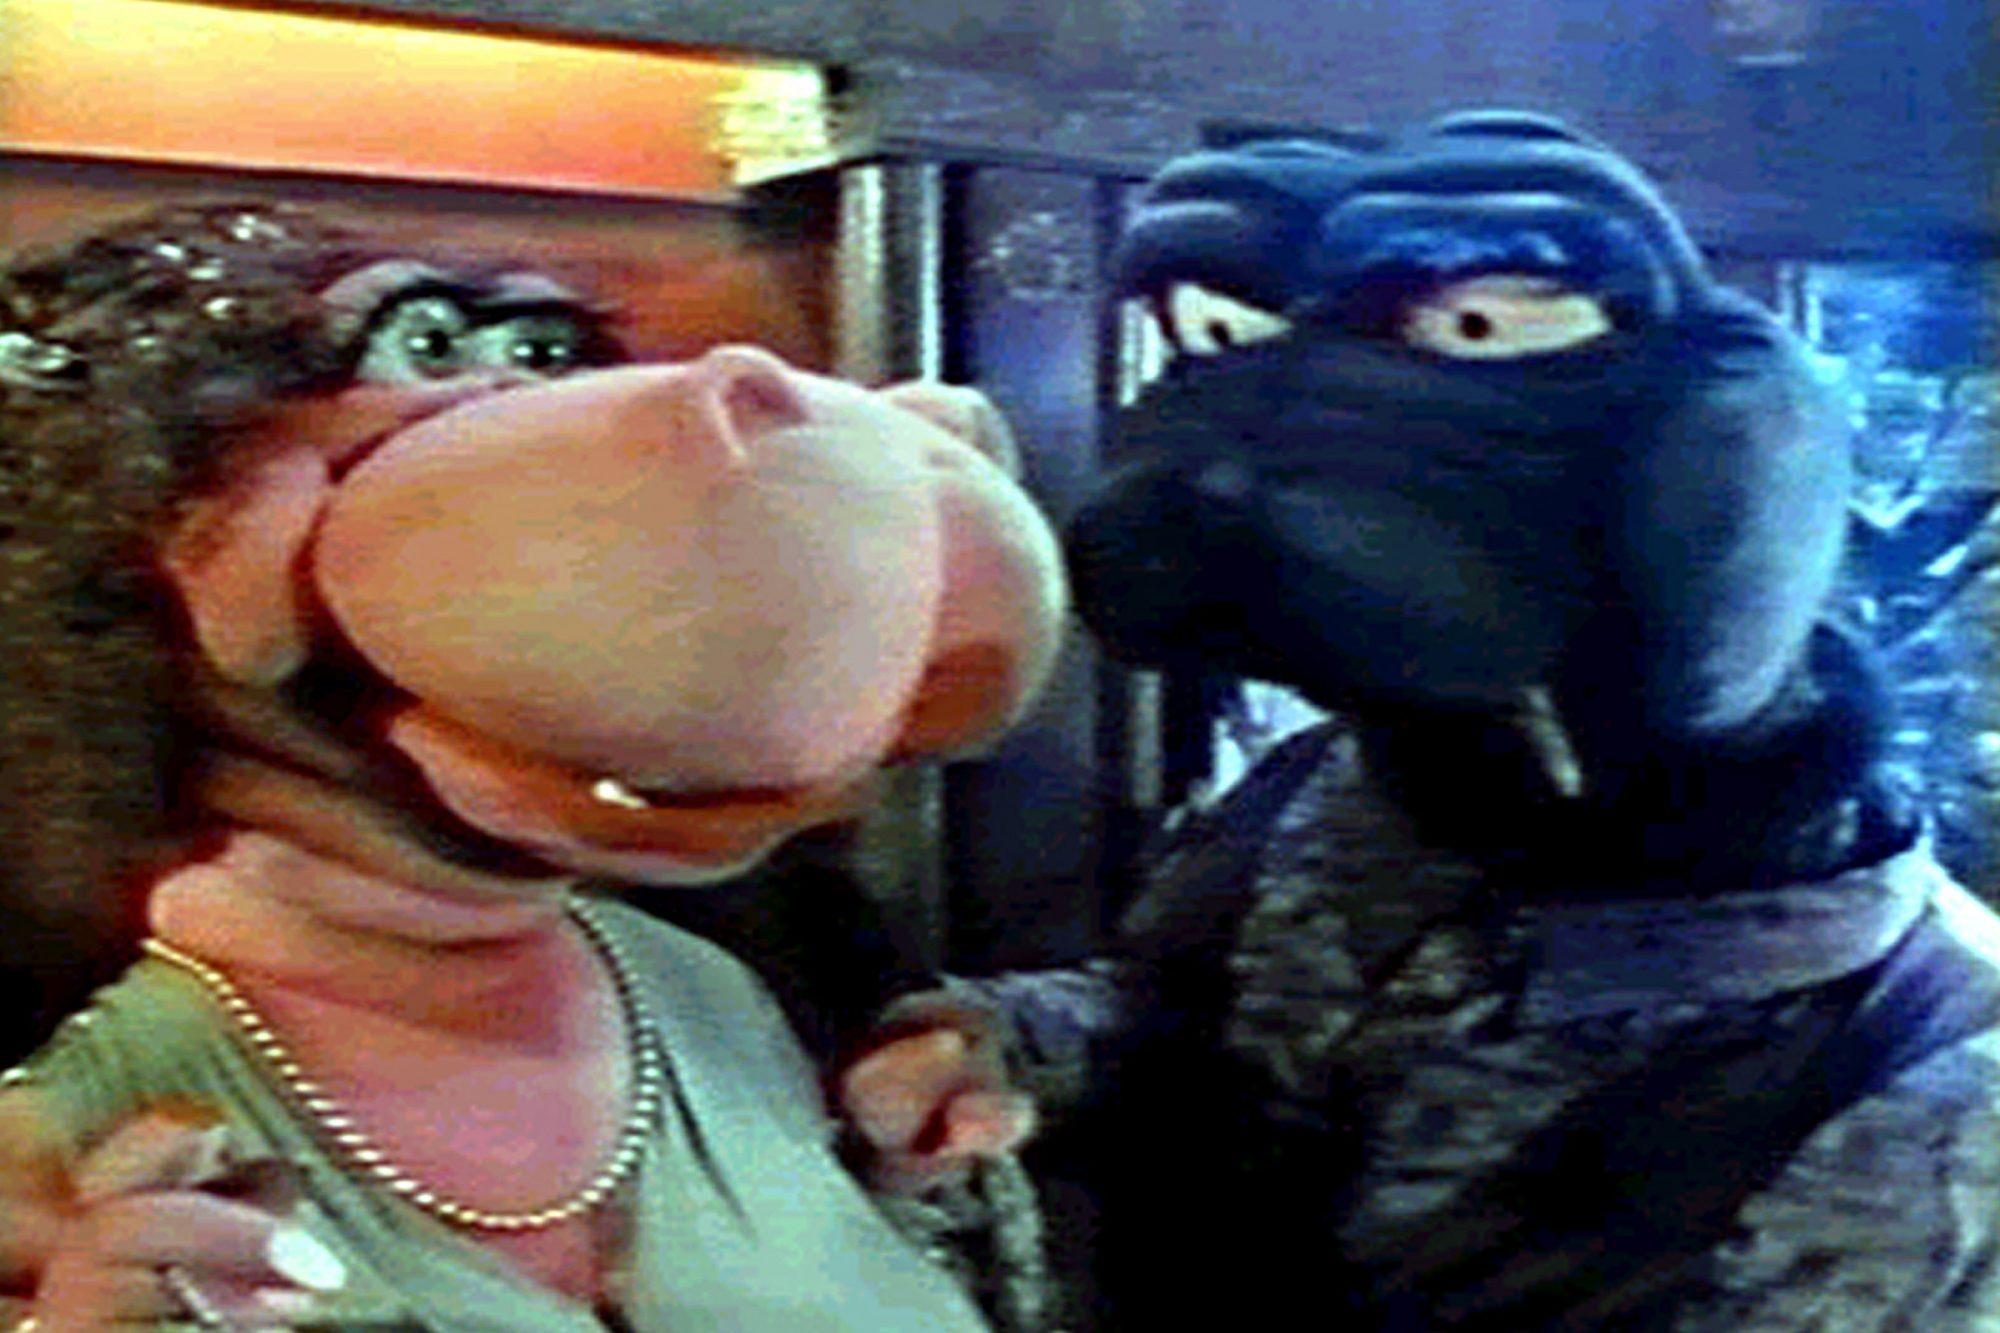 MEET THE FEEBLES, 1989 animated film.